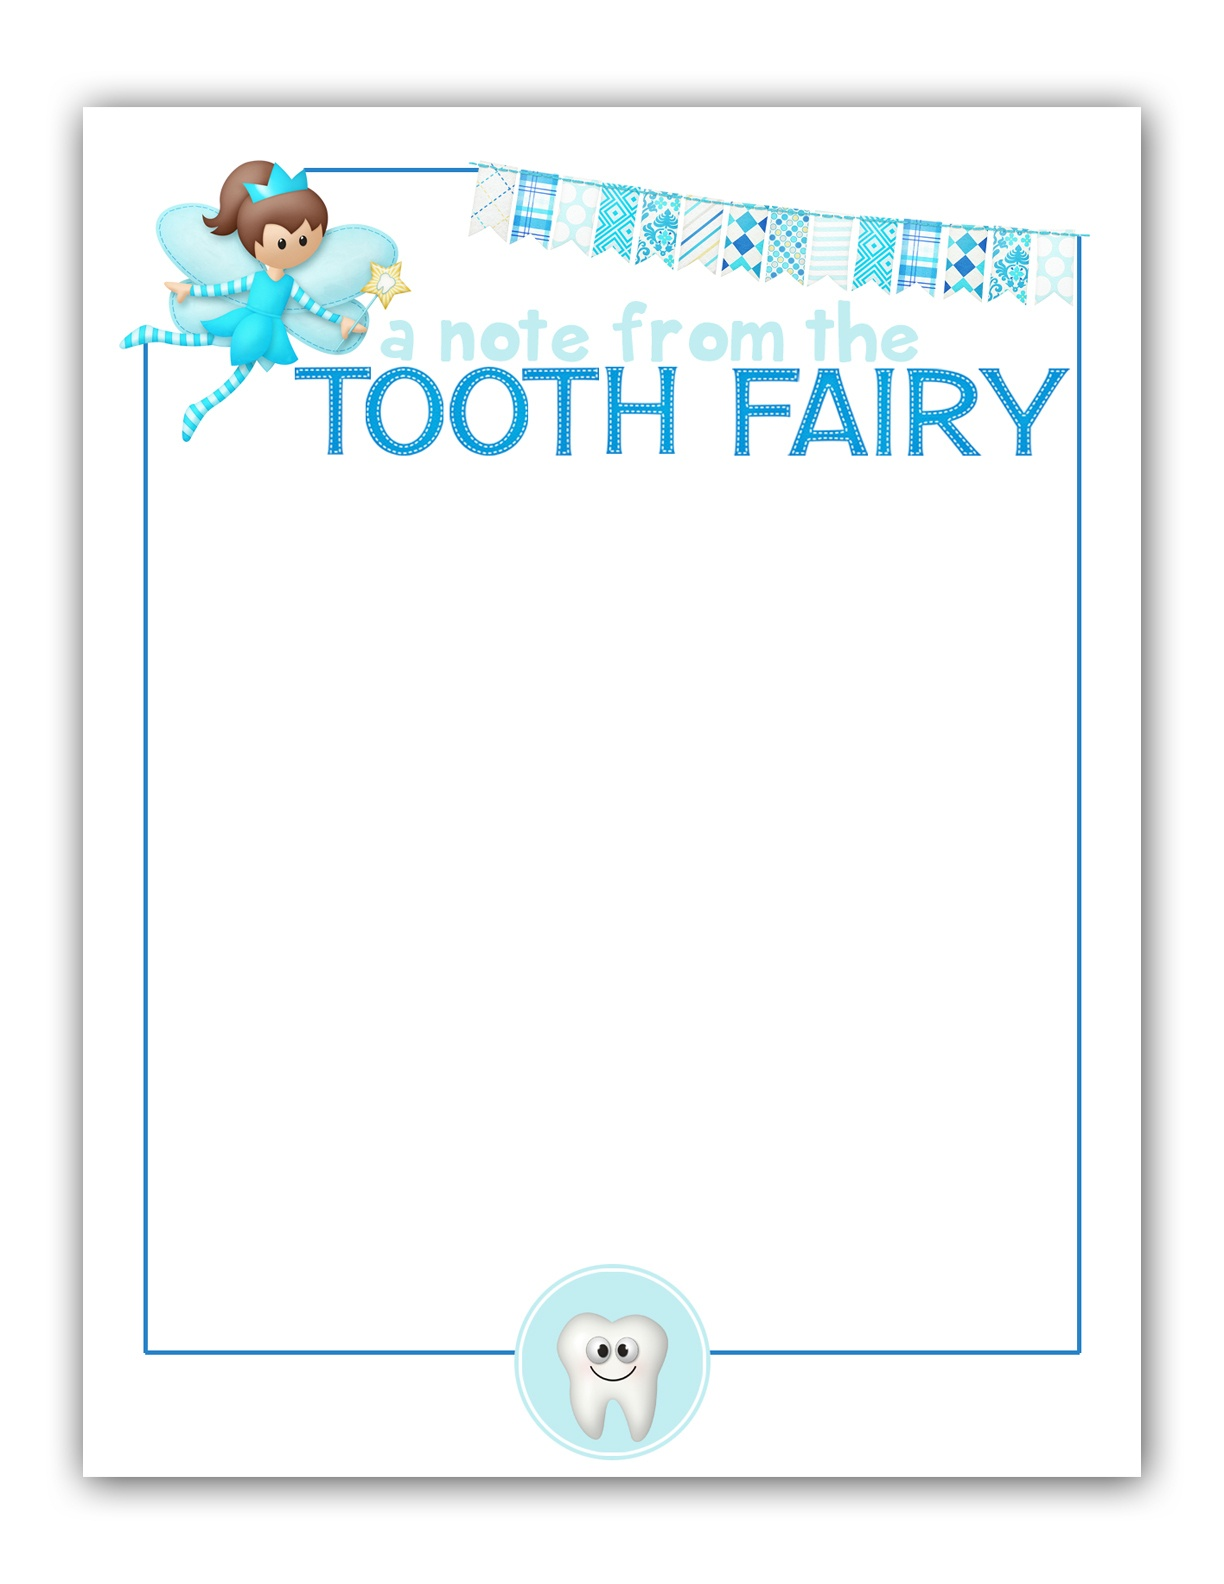 M|K Designs Blog: Tooth Fairy Stationary - Free Printable - Free Printable Tooth Fairy Pictures